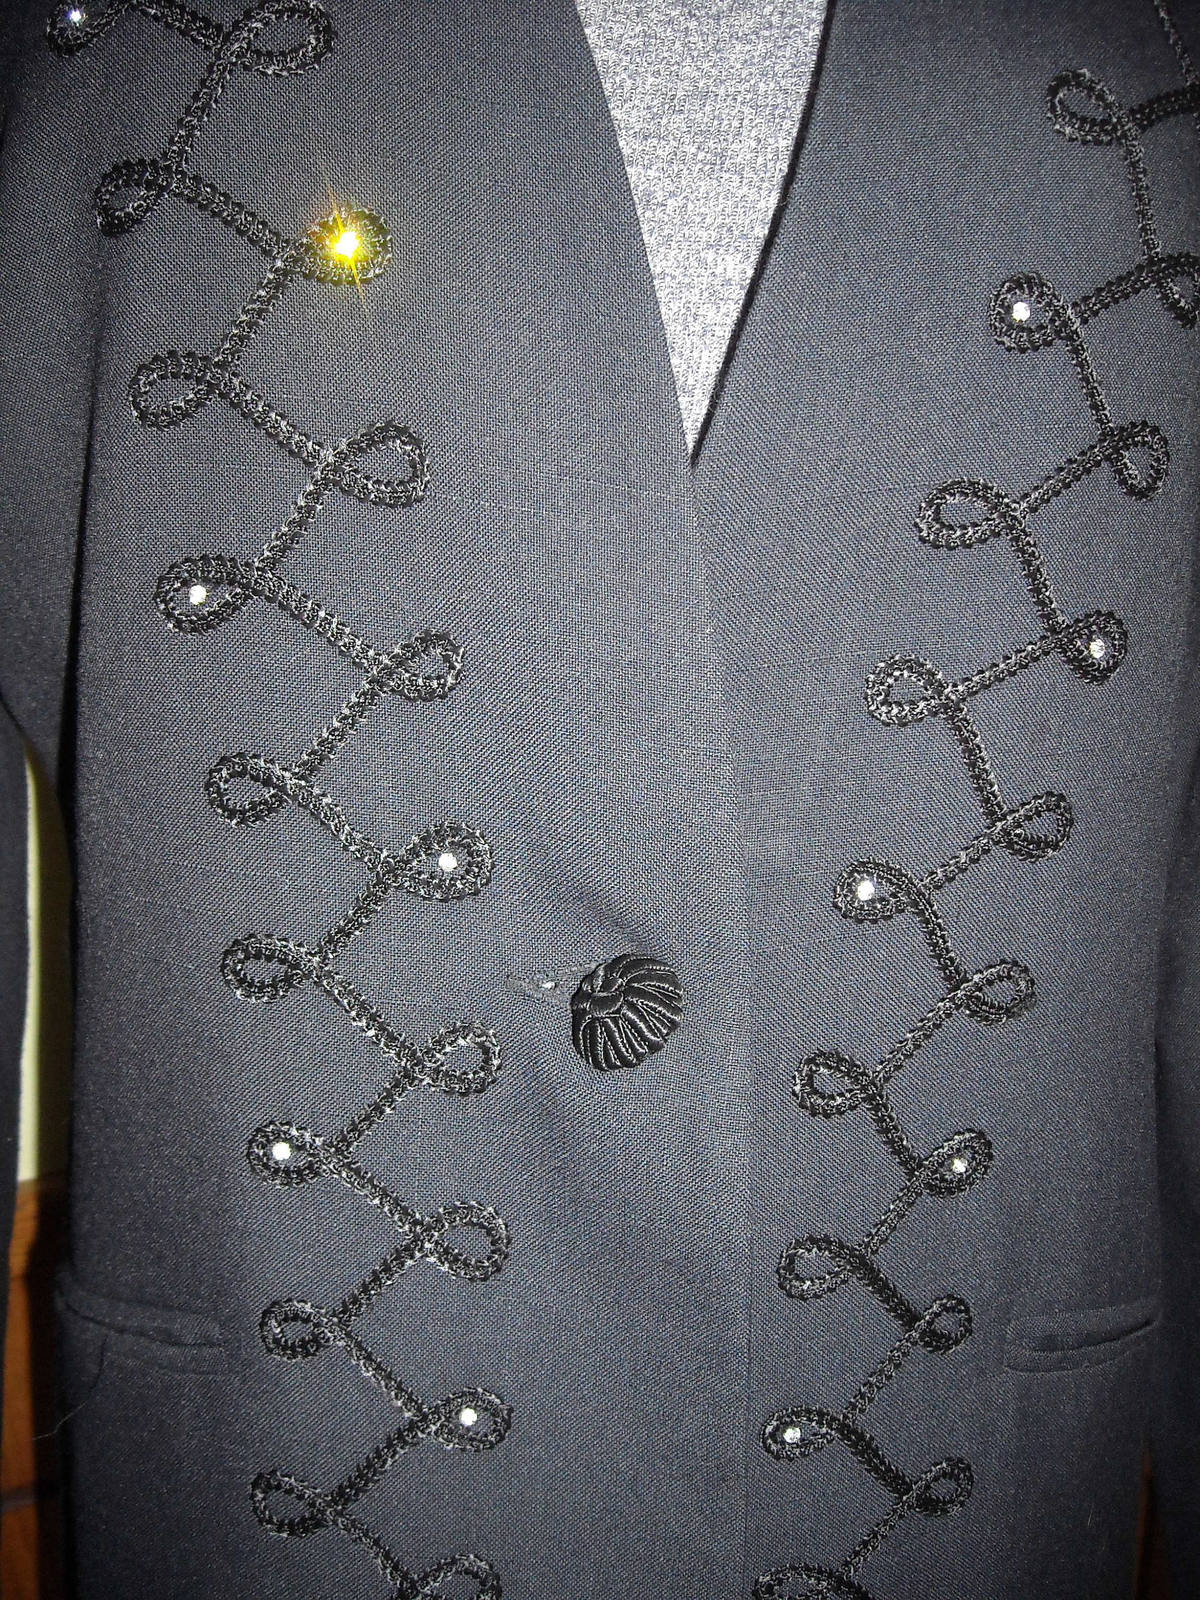 Women's Executive Collection Black Dress Jacket With Embroidery & Rhinestones 14 image 2